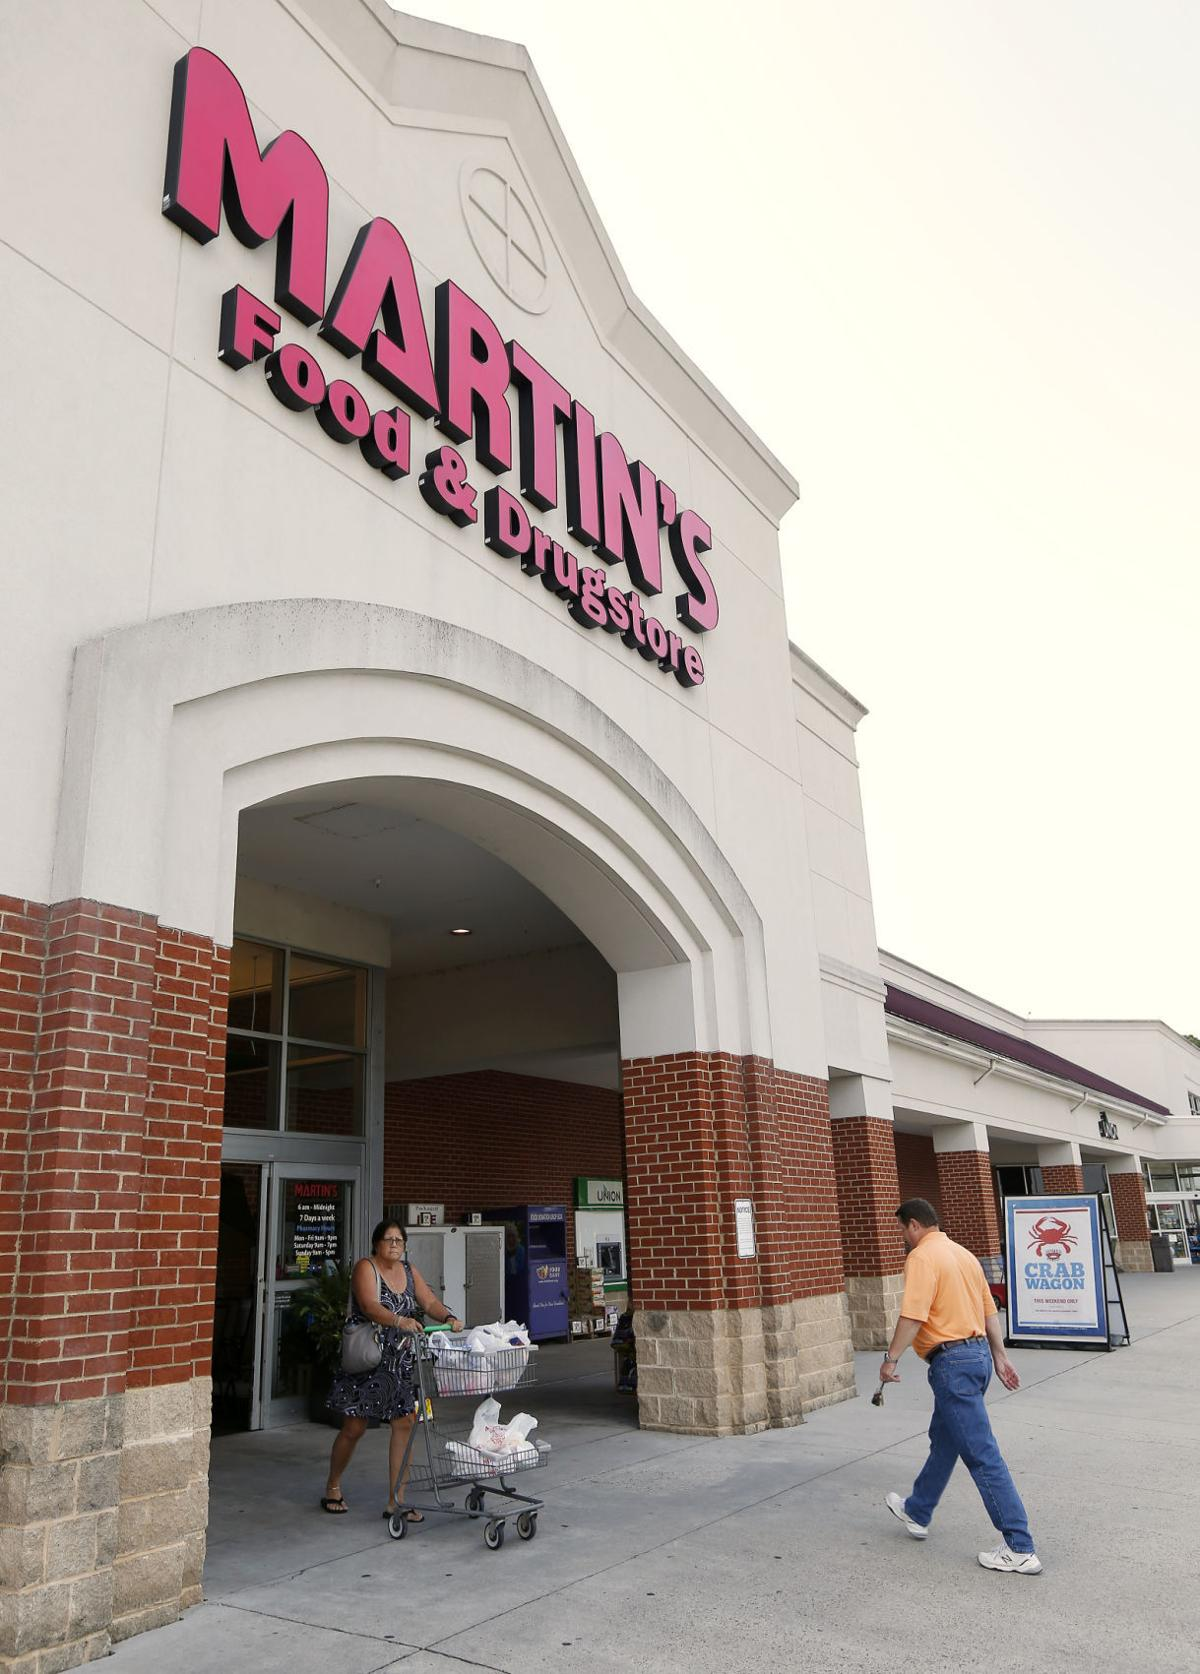 Despite buying only 10 locations, Publix has plans for more